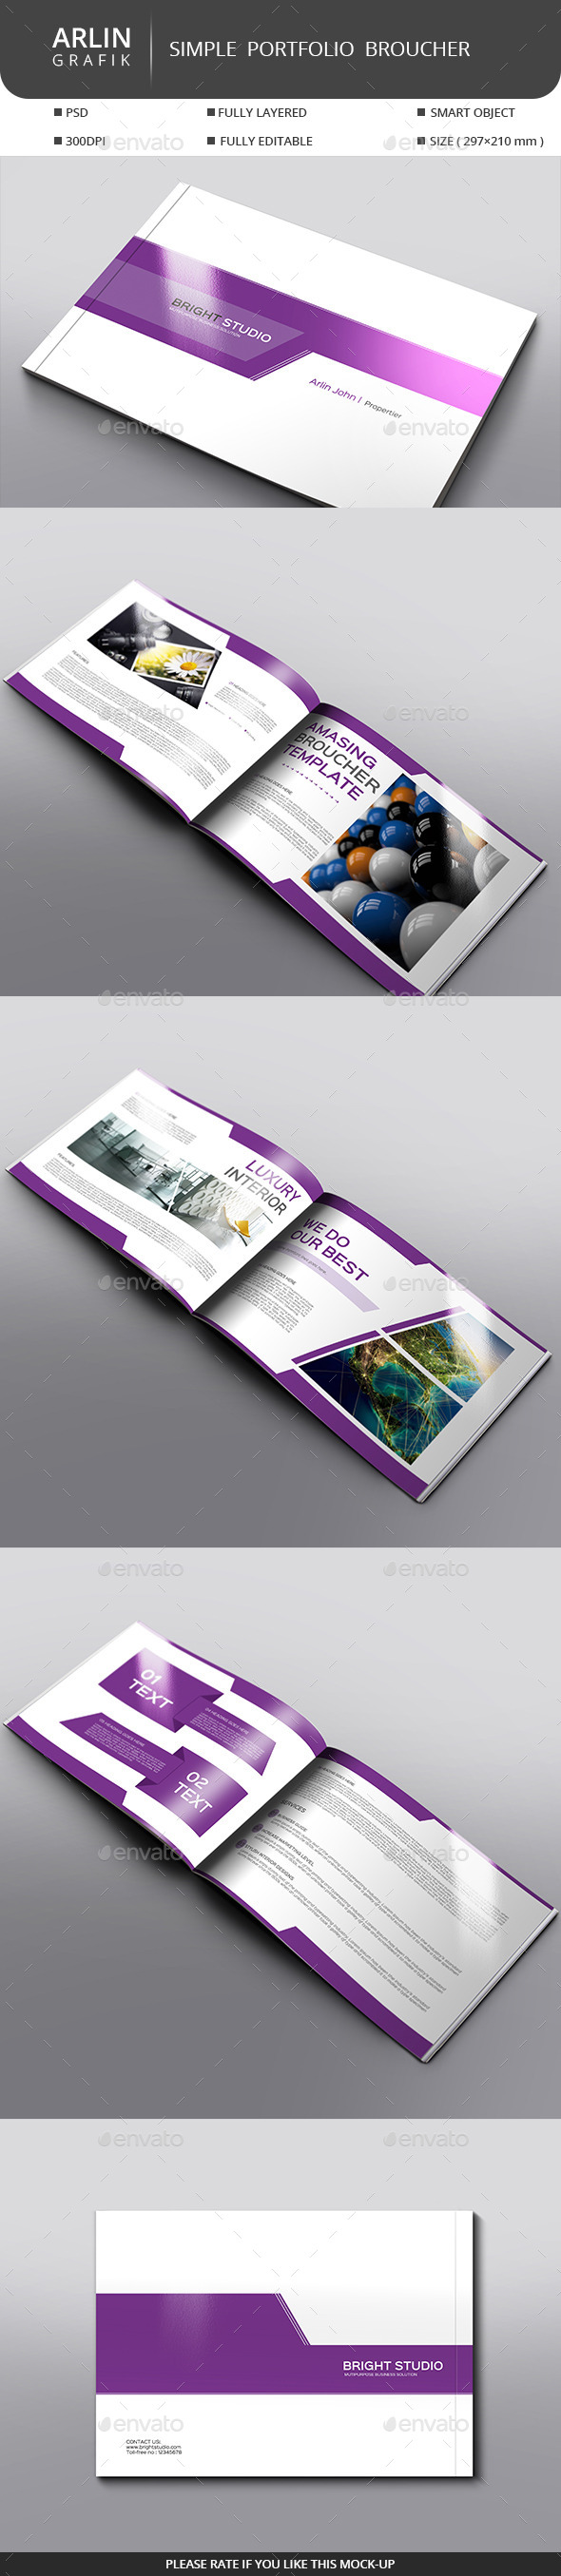 GraphicRiver Simple Portfolio V 01 10260870